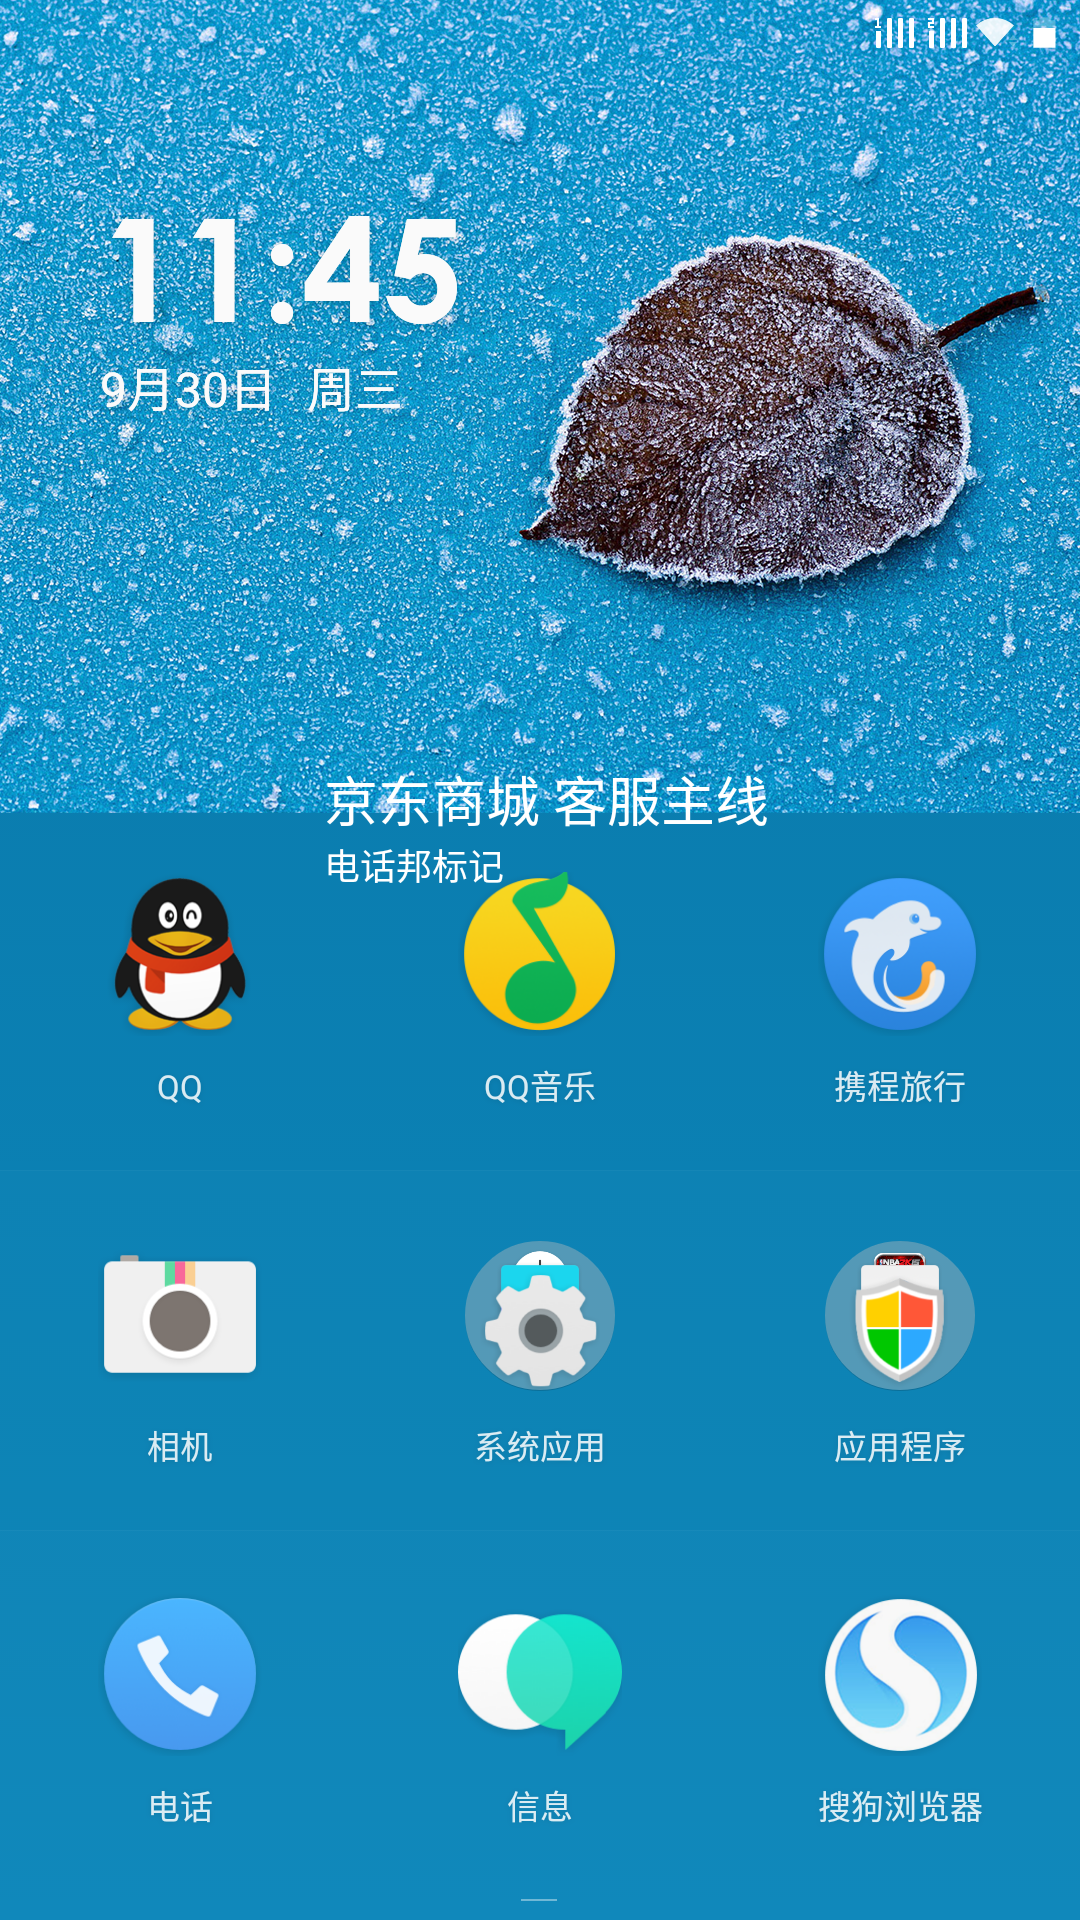 Screenshot_2015-09-30-11-45-14.png